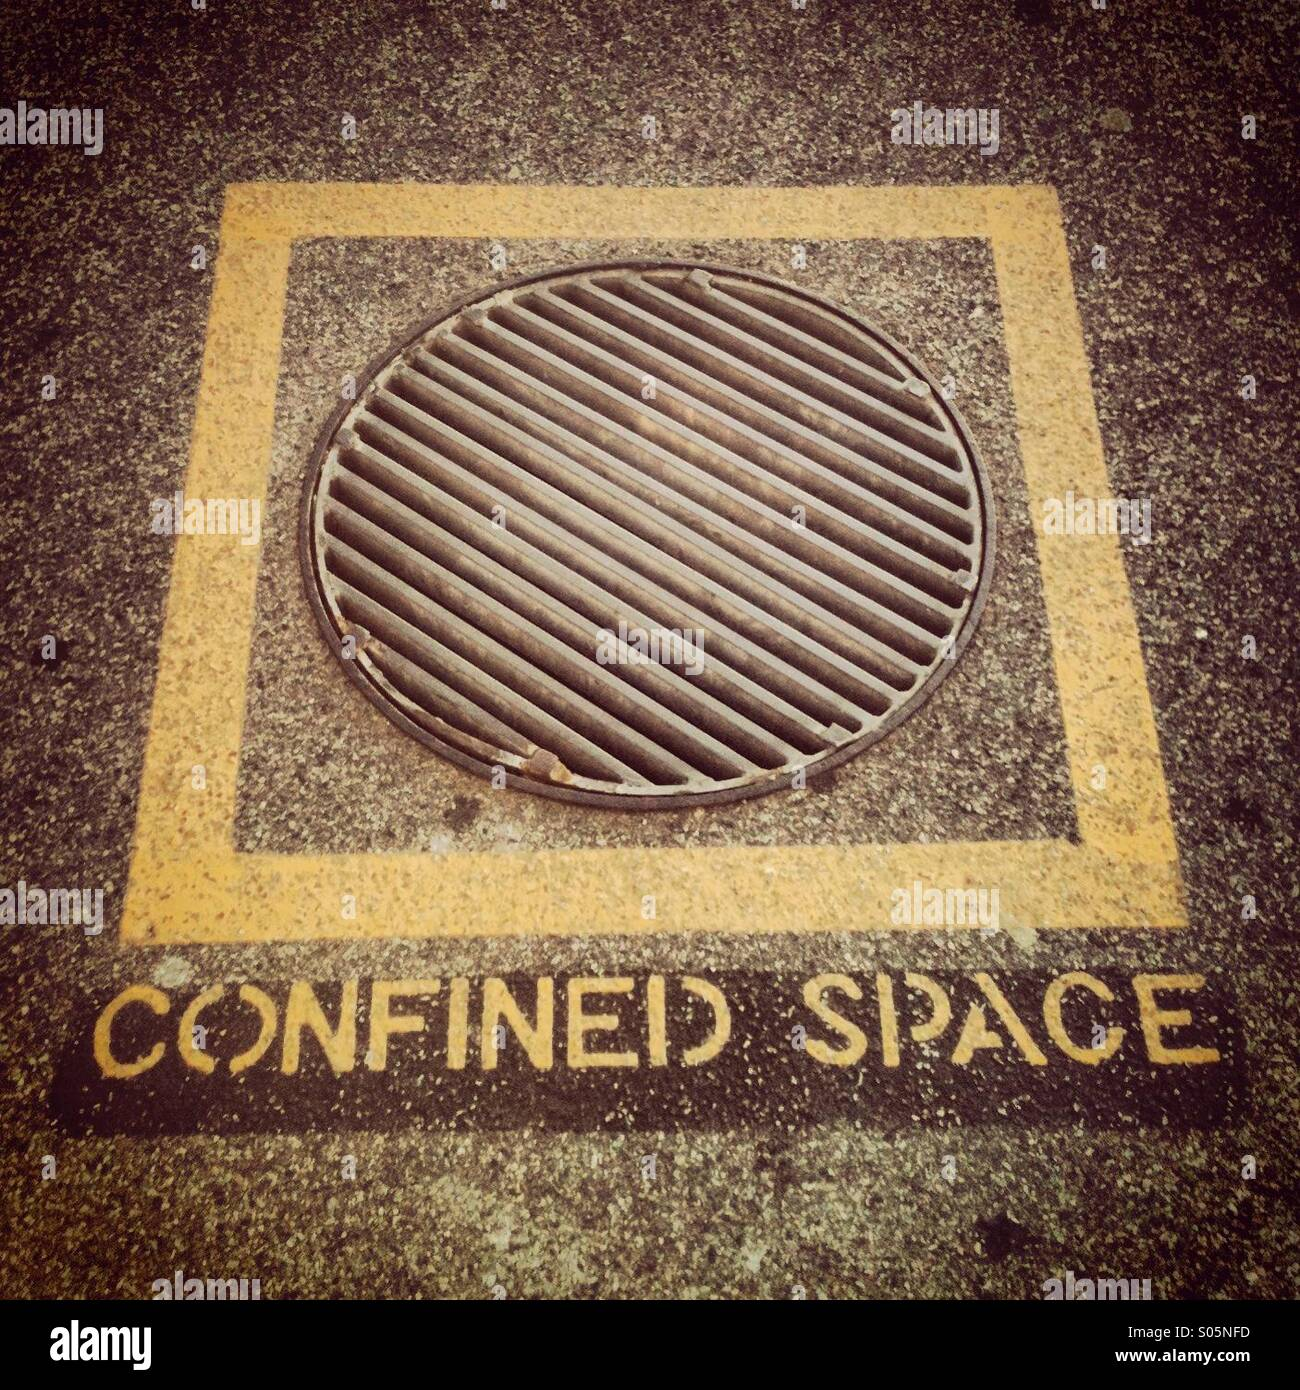 Confined space stencilled onto the floor below a yellow square and drain cover - Stock Image